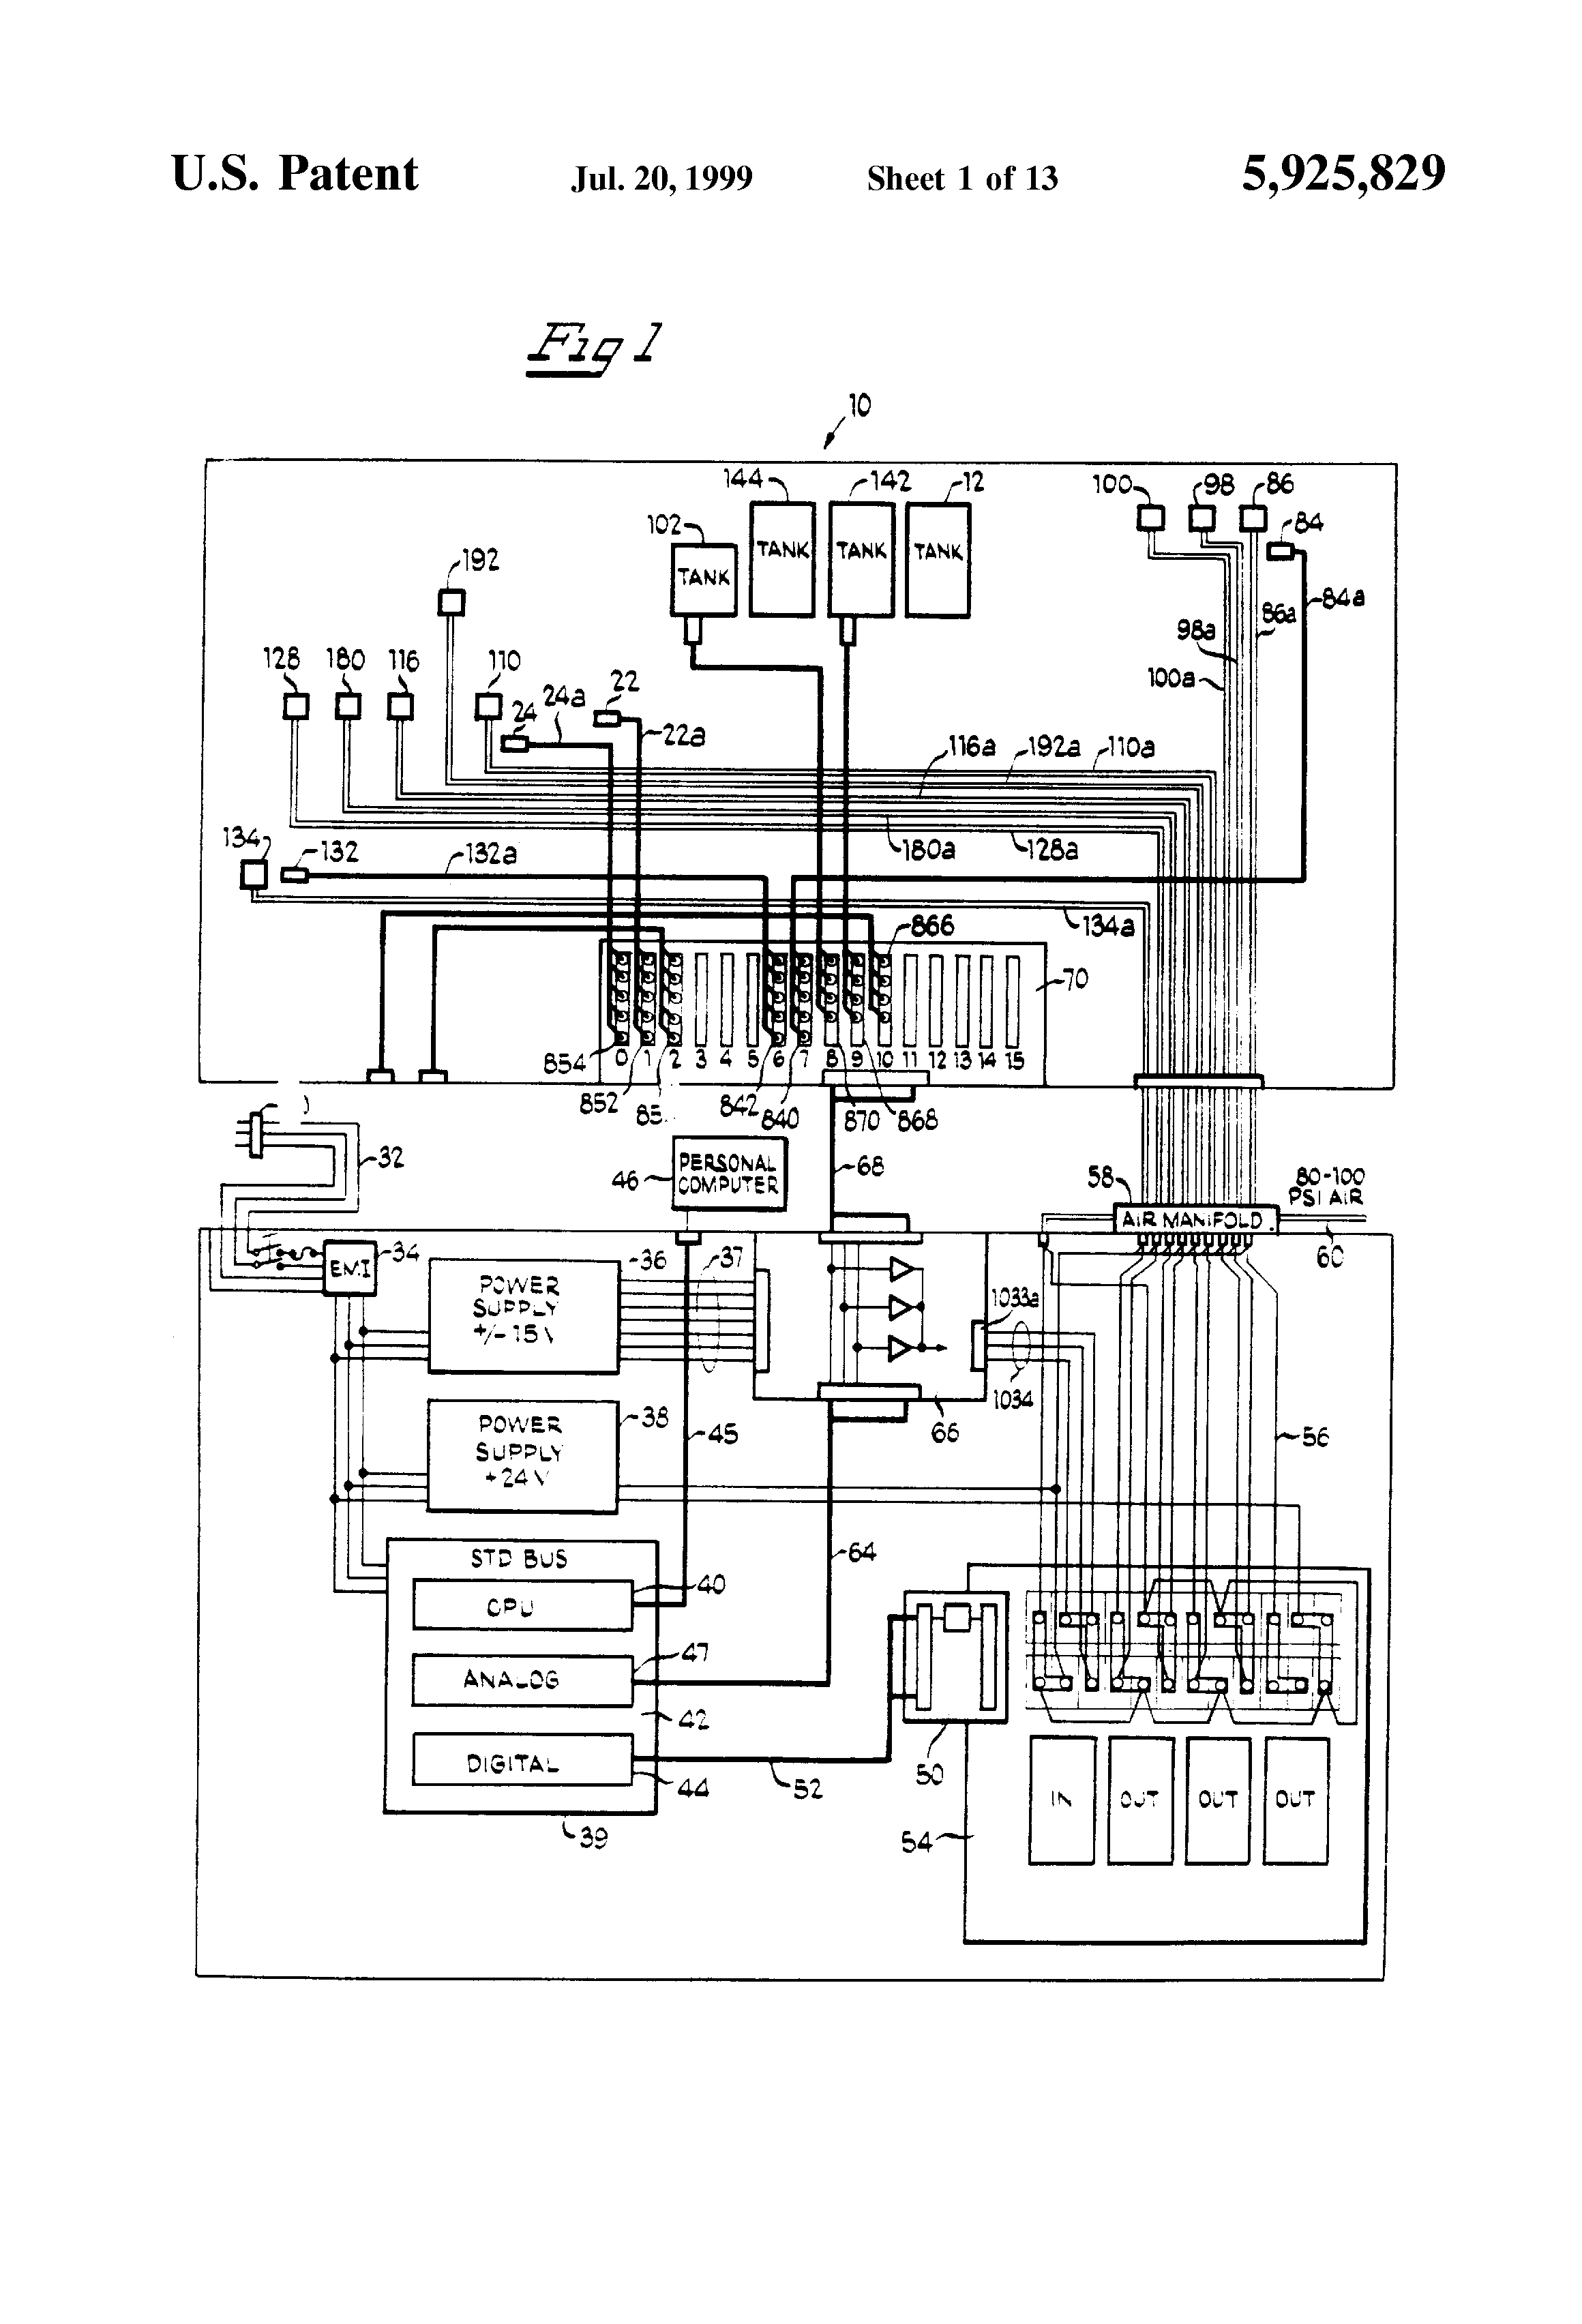 wiring diagram mks liquid rheostat  u2013 readingrat net